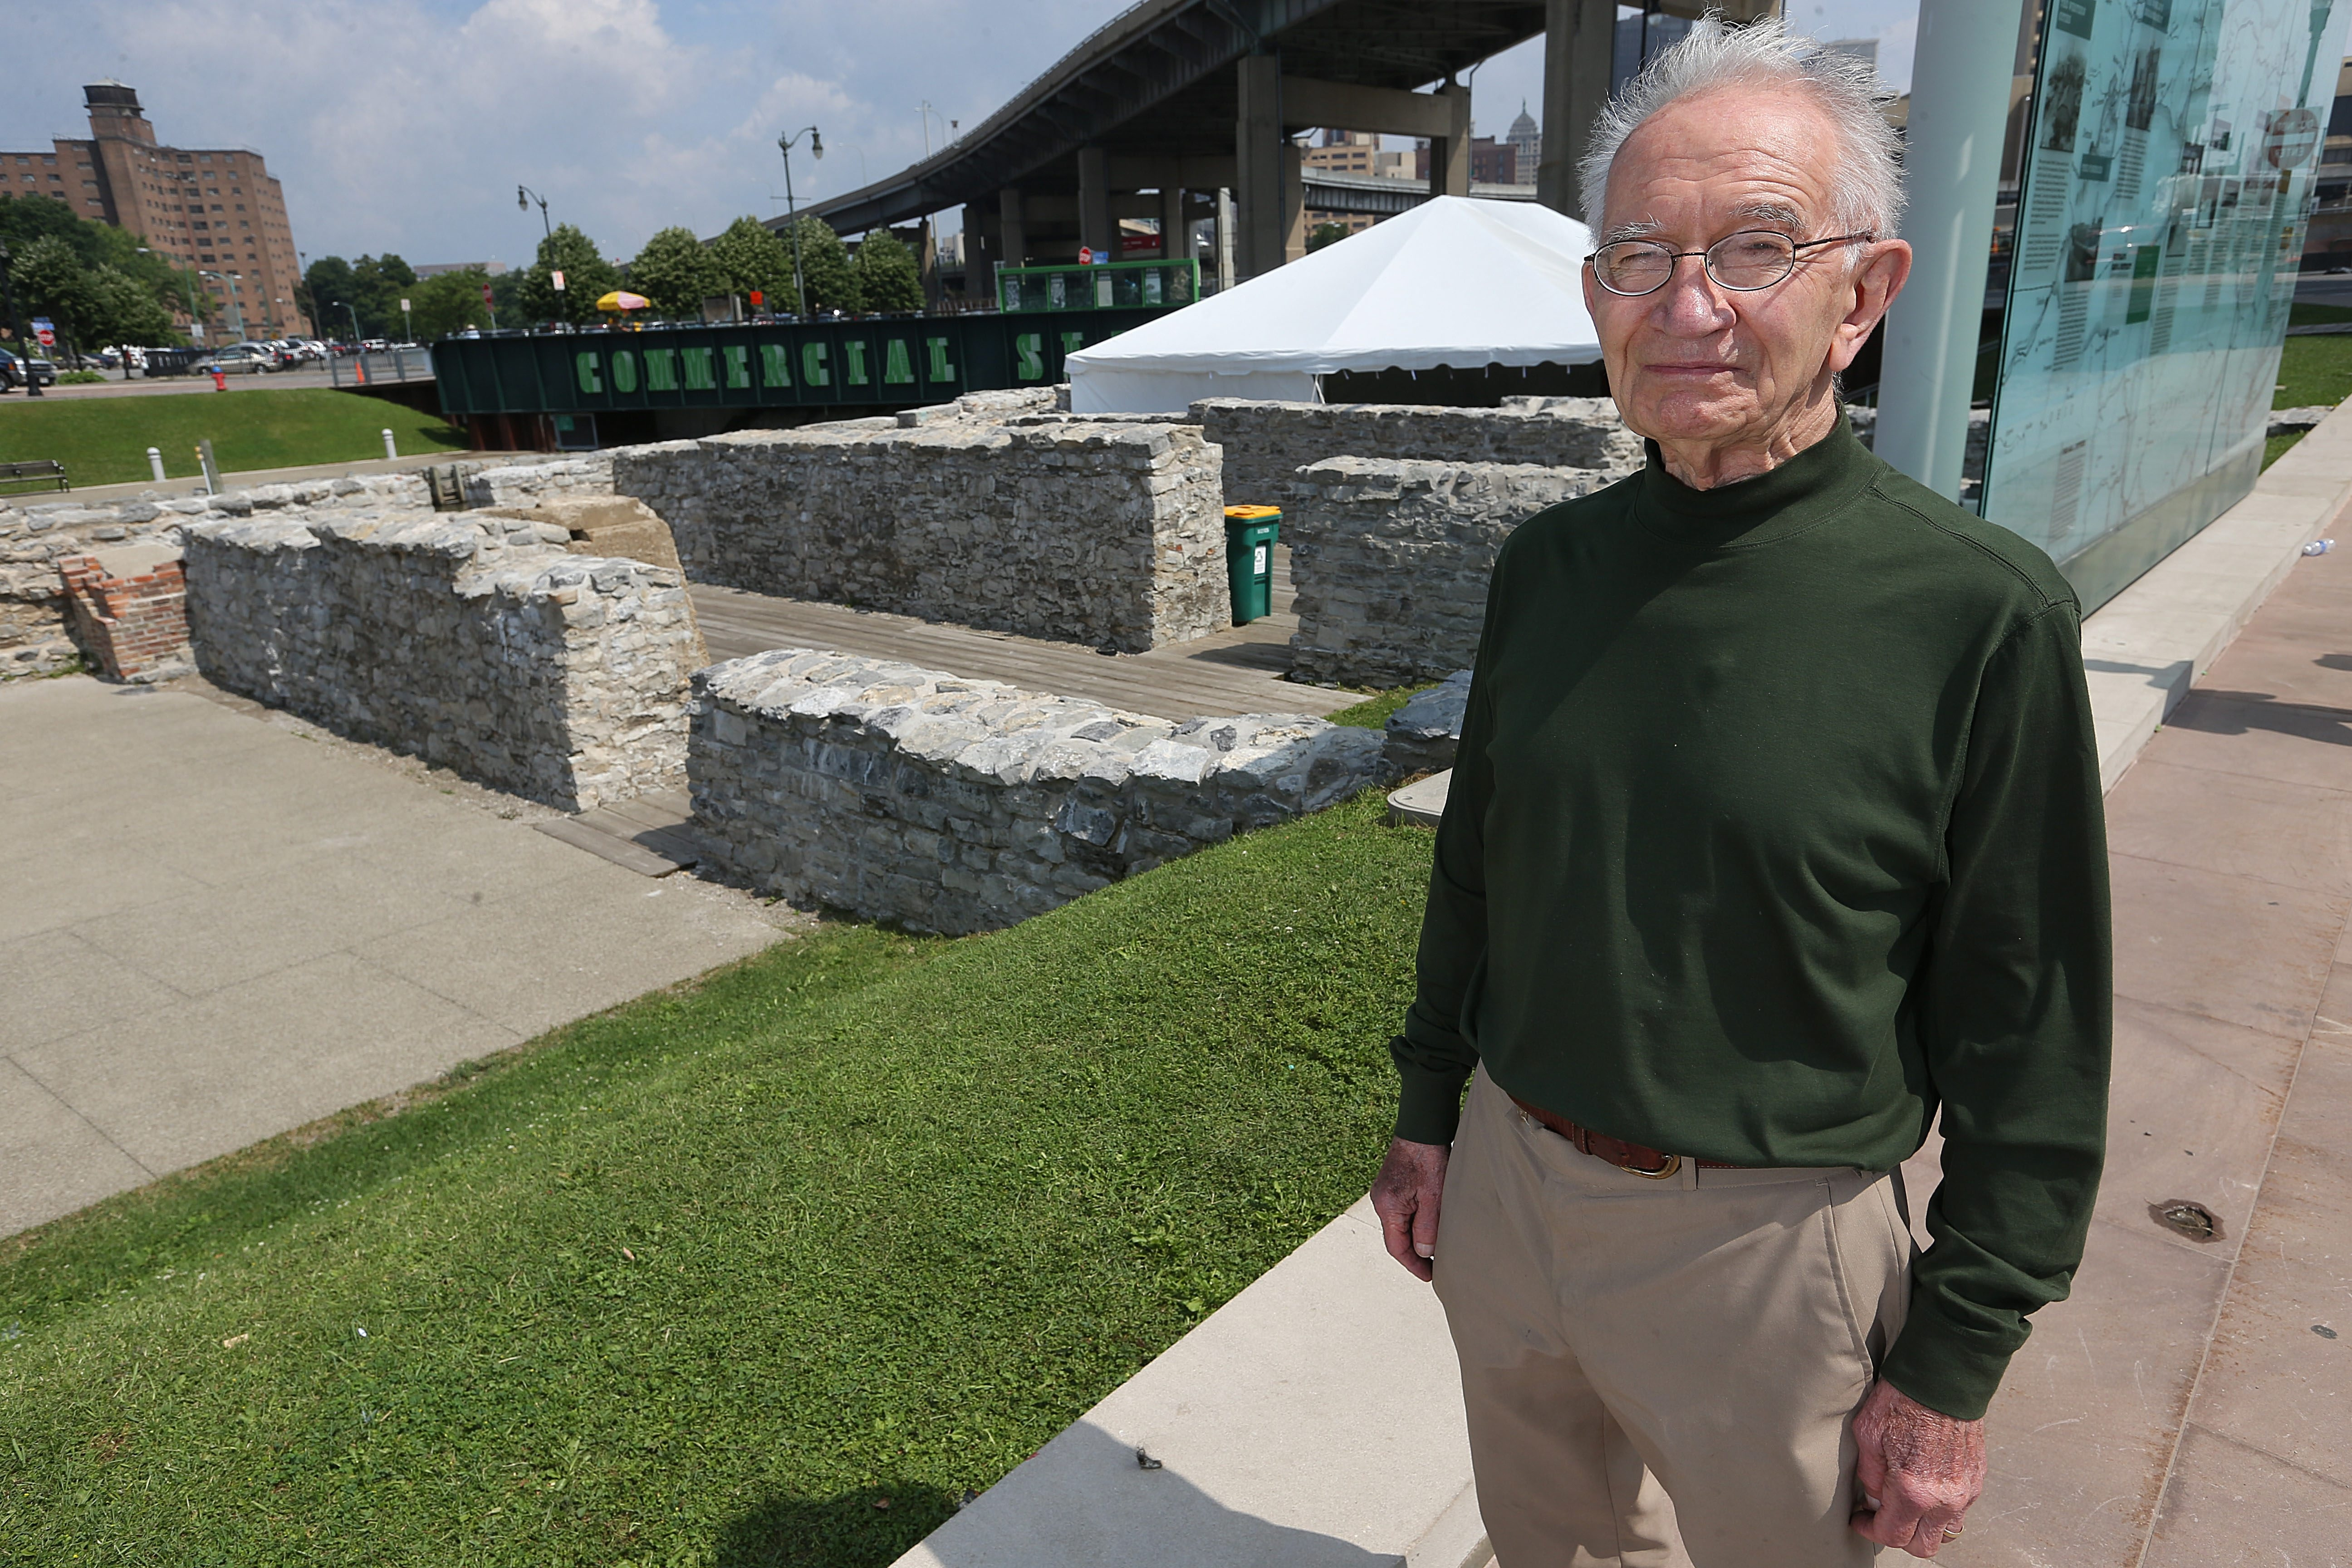 Henry Baxter, 91, of Buffalo, standing near the Commercial Slip ruins, reflects on the what the area was like years ago.